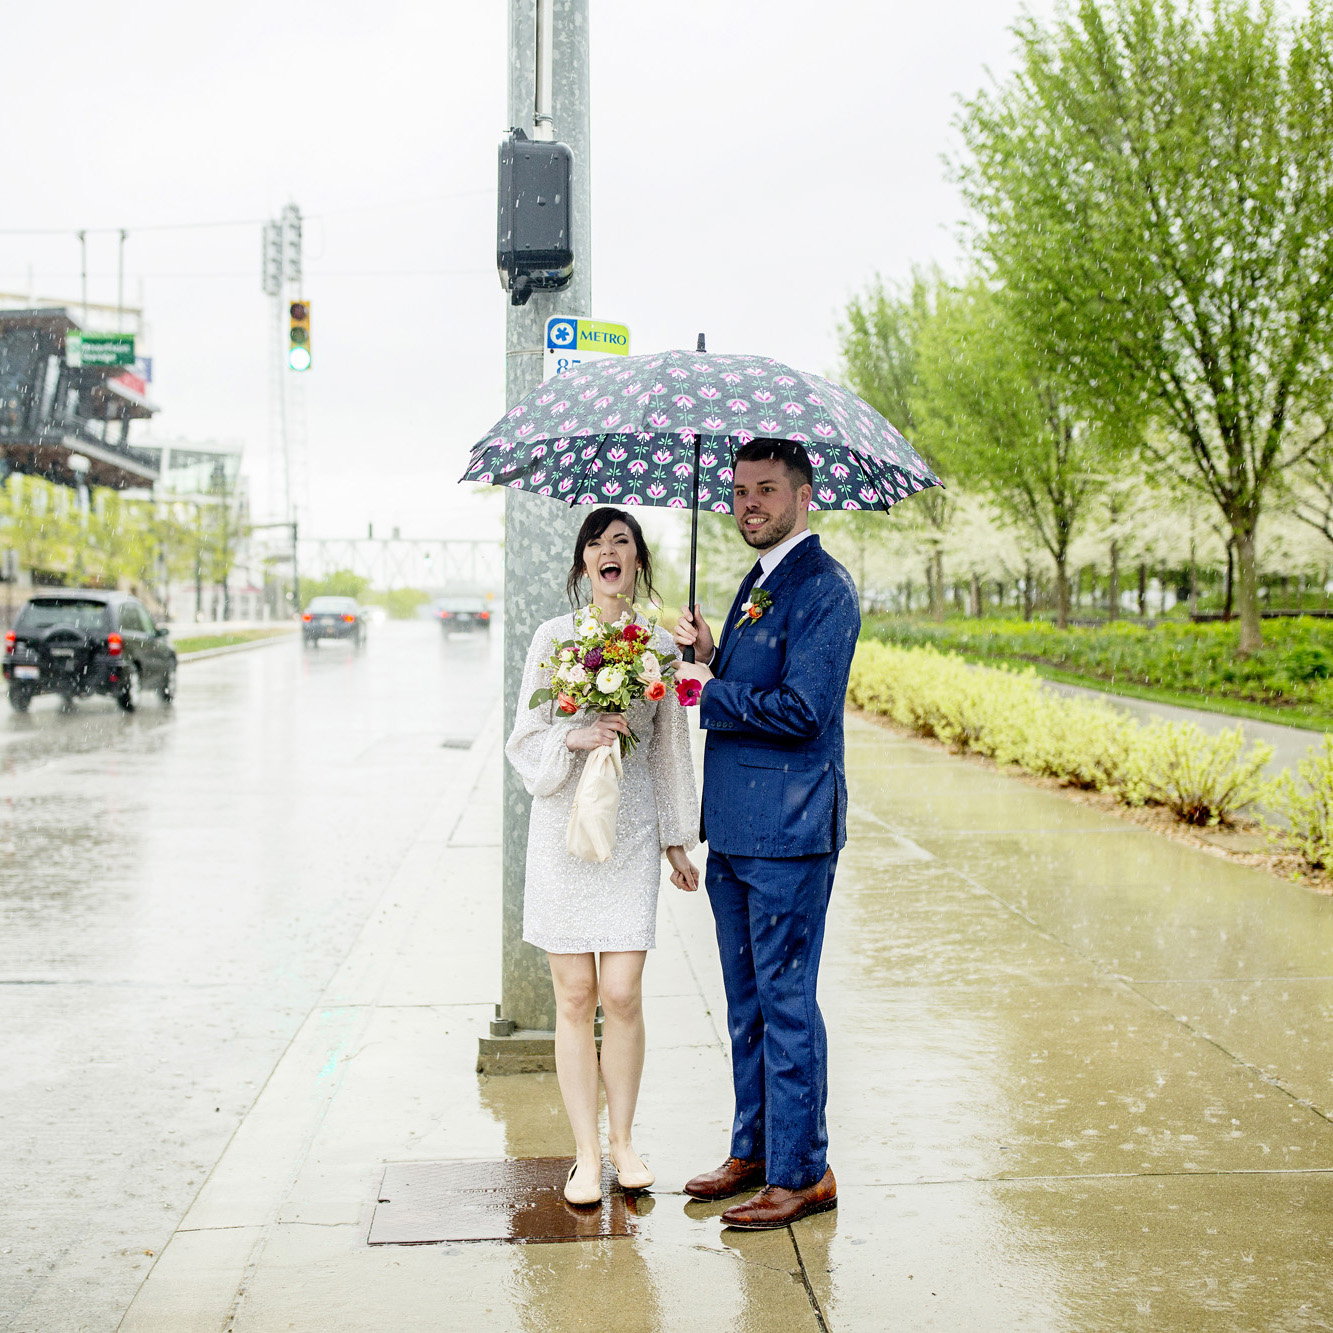 Seriously_Sabrina_Photography_Cincinnati_Ohio_Alms_Park_Elopement_Lauren_Aaron_60.jpg